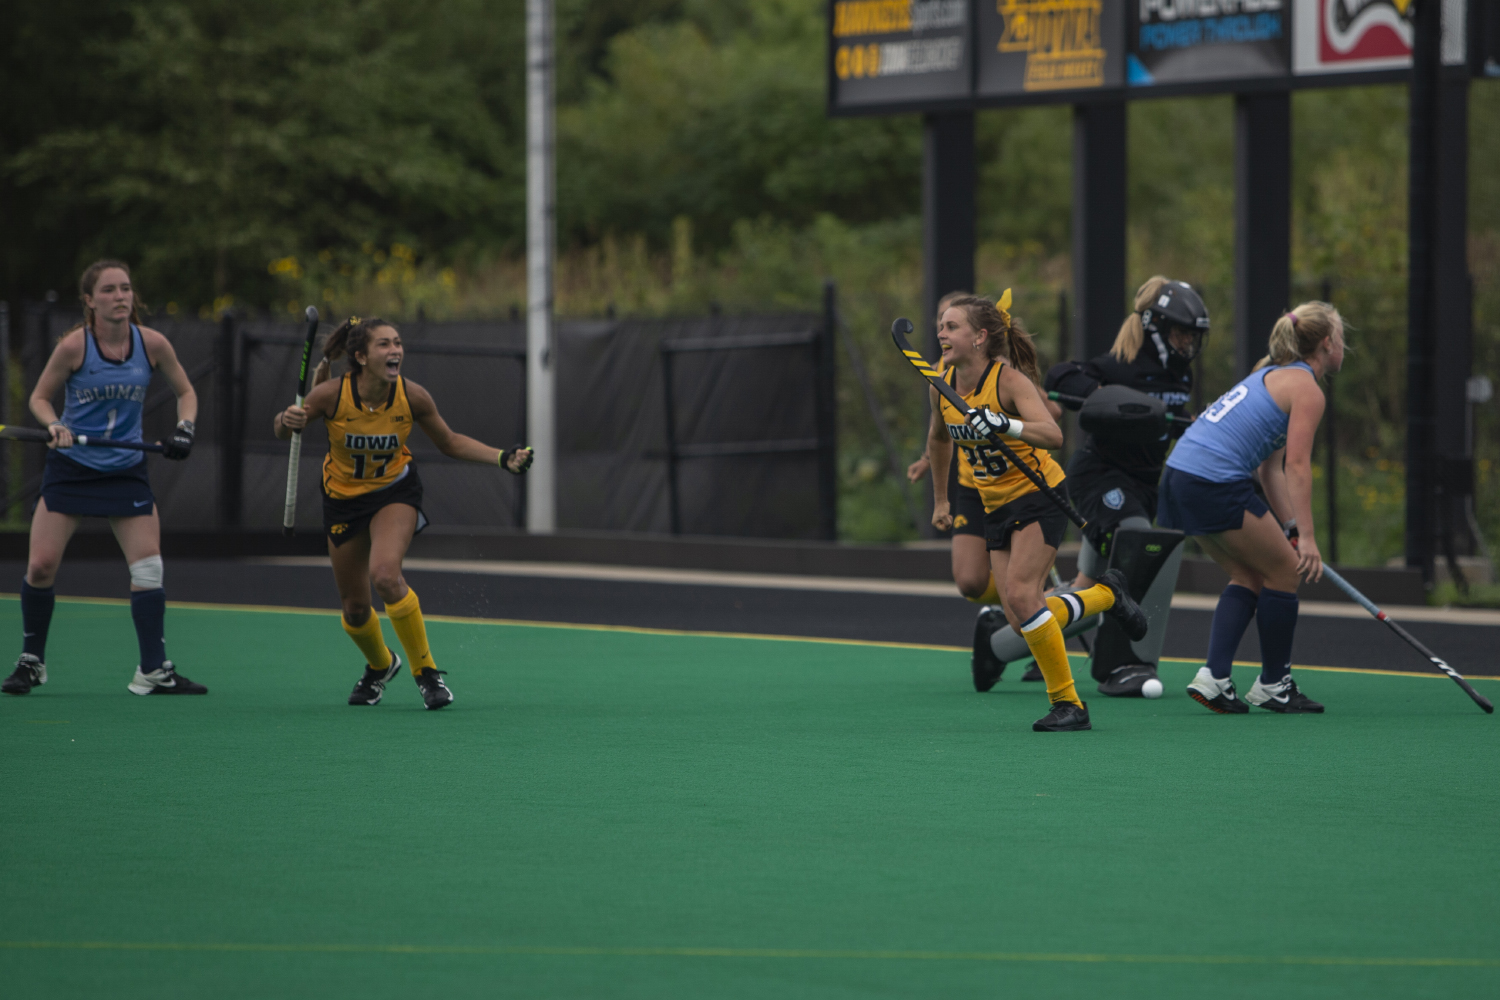 Iowa+forwards+Maddy+Murphy+and+Ciara+Smith+celebrate+a+goal+during+a+field+hockey+game+between+Iowa+and+Columbia+at+Grant+Field+on+Sunday%2C+September+8%2C+2019.+The+Hawkeyes+defeated+the+Lions%2C+3-1.